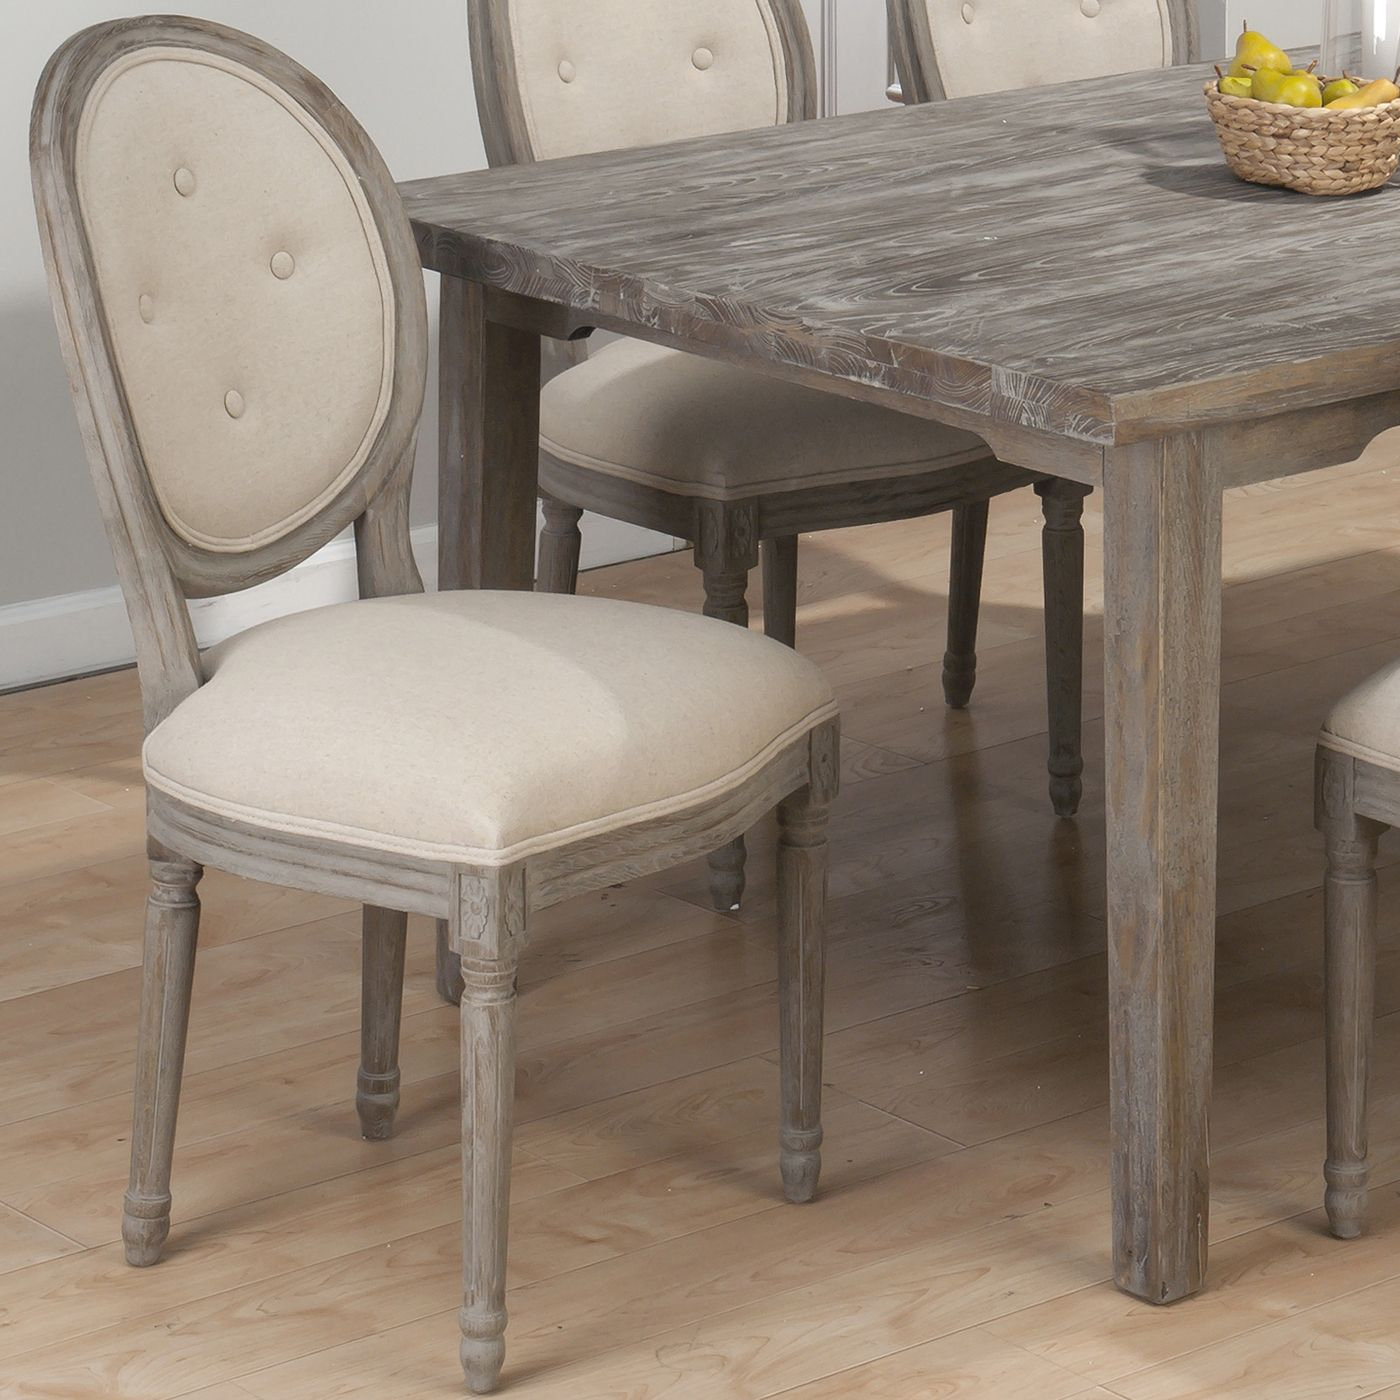 Shop Jofran 856-948 Oval Tufted Back Dining Chair (Set Of